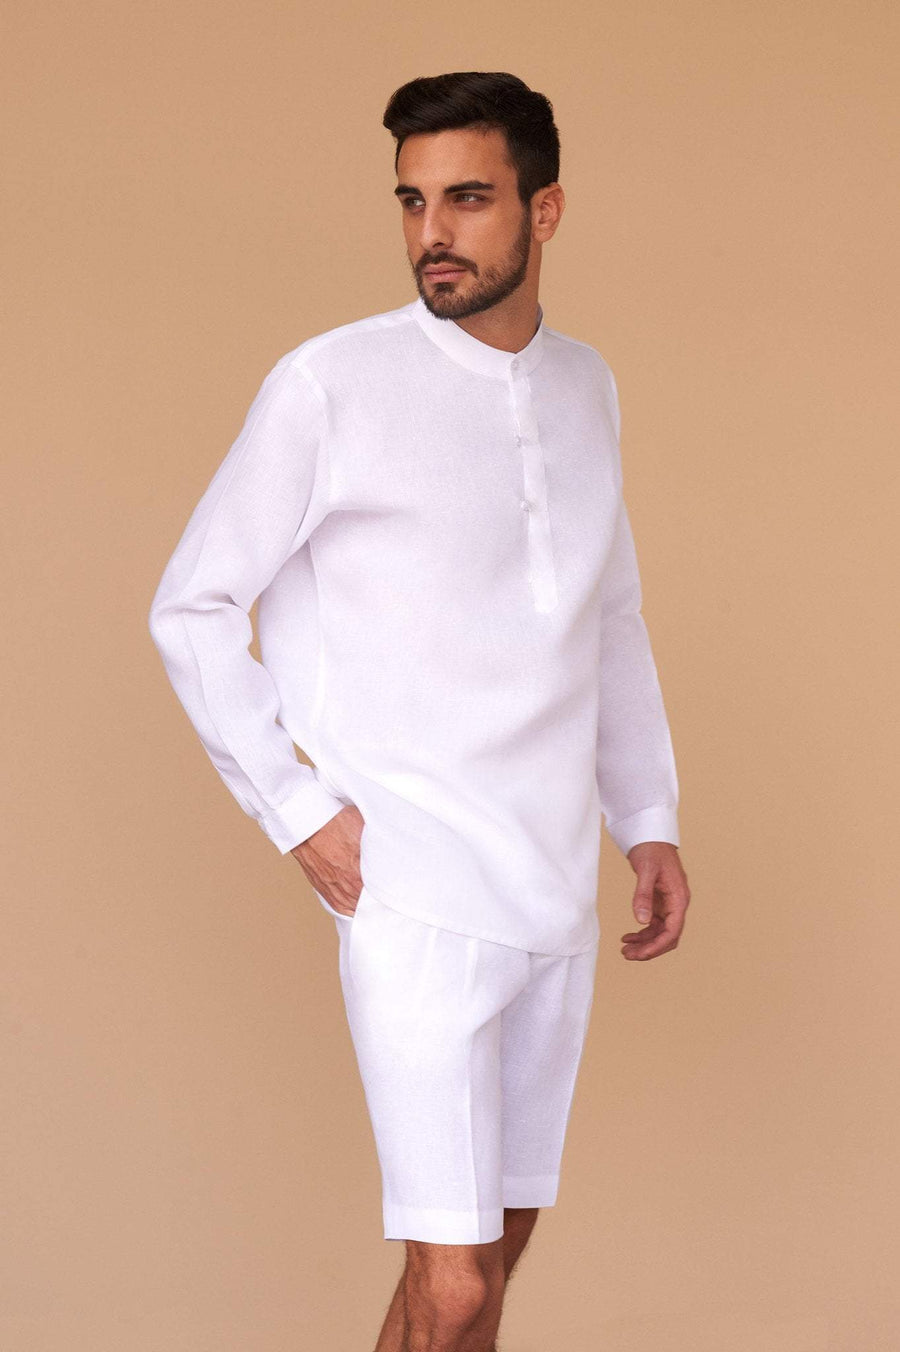 Men's Shirt White Linen Wear Clothing Fashion Luxury